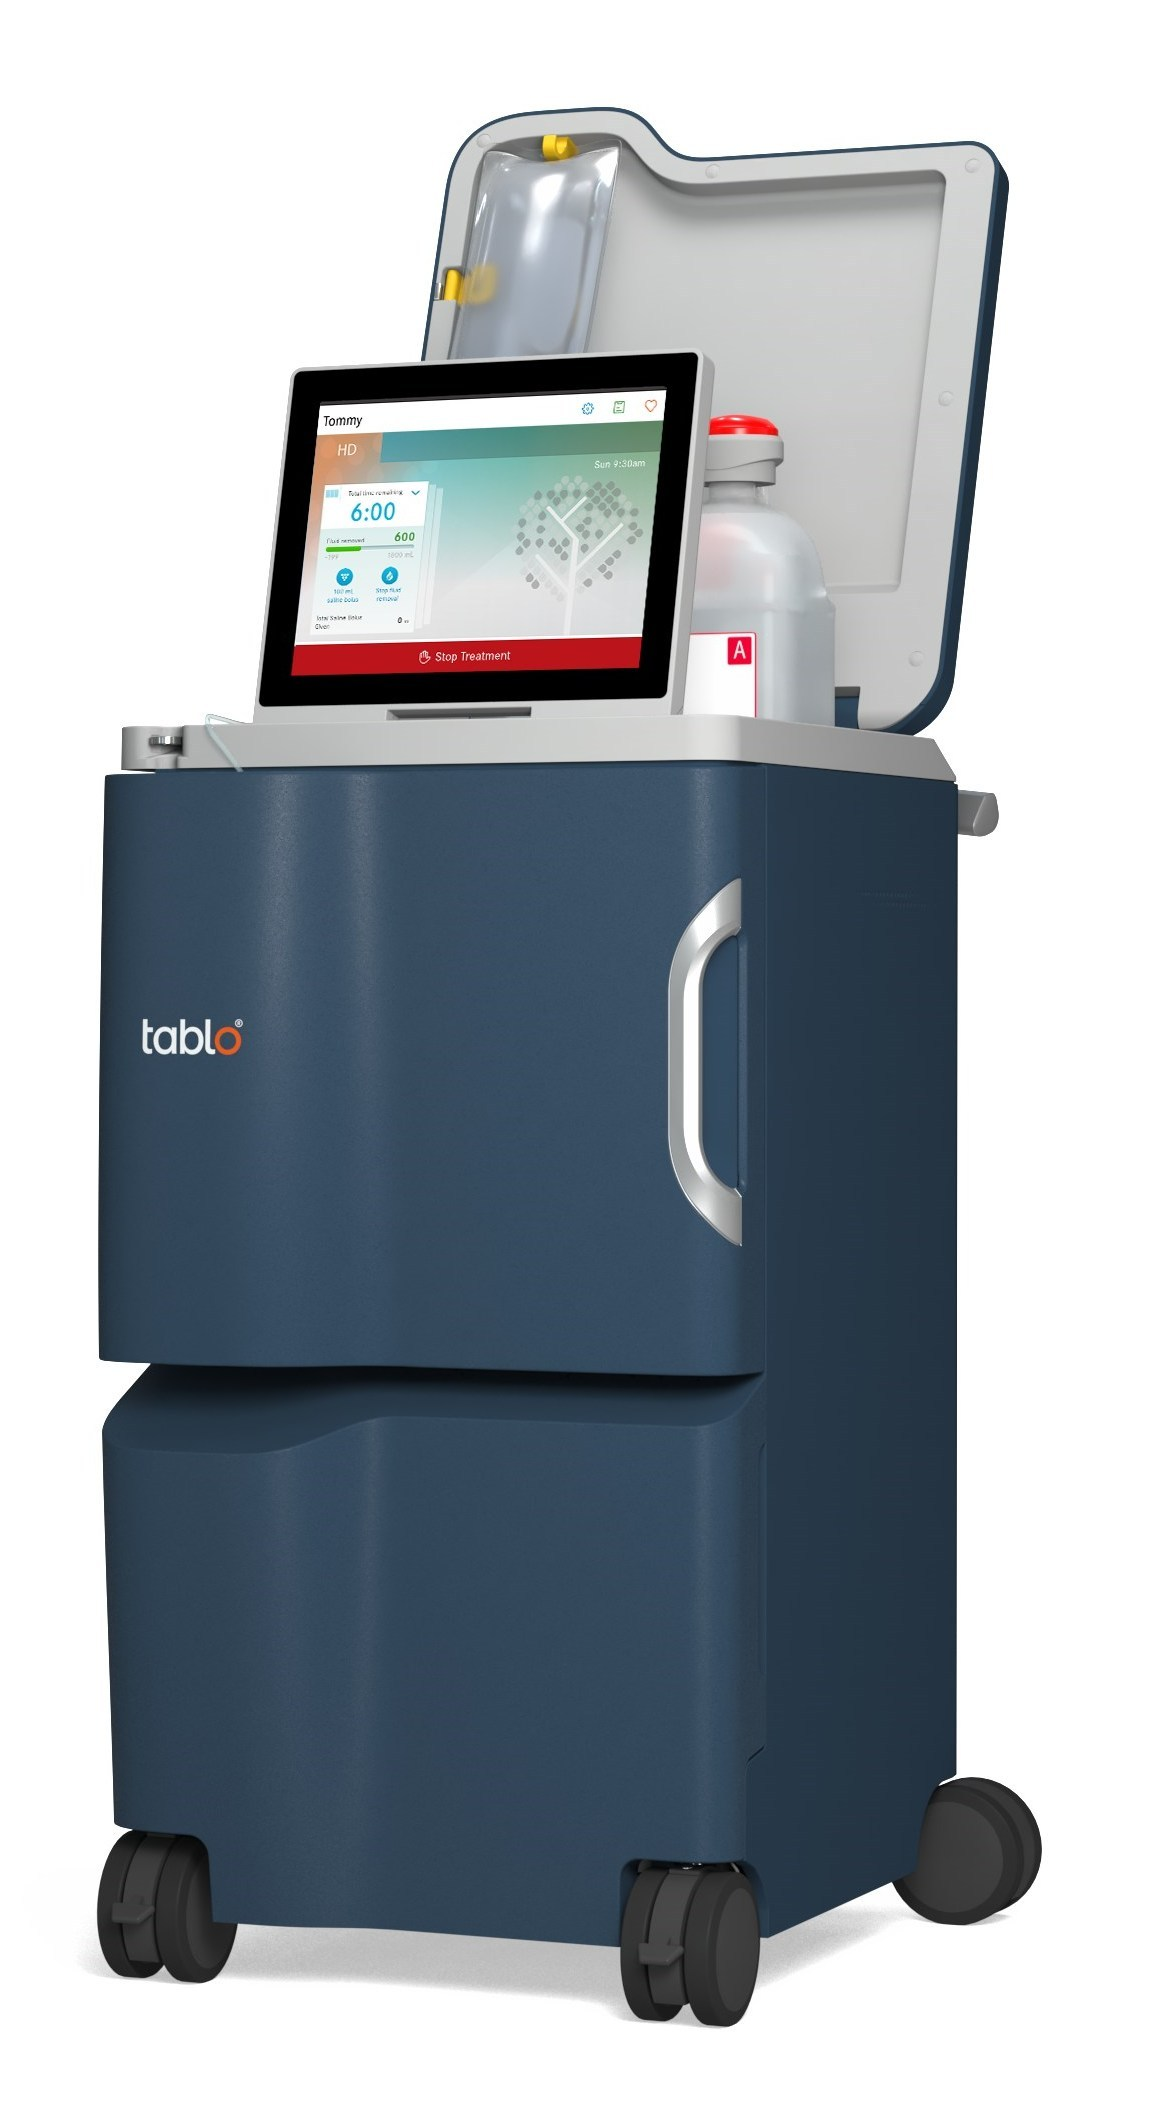 Tablo Hemodialysis System Receives FDA Clearance for Home ...